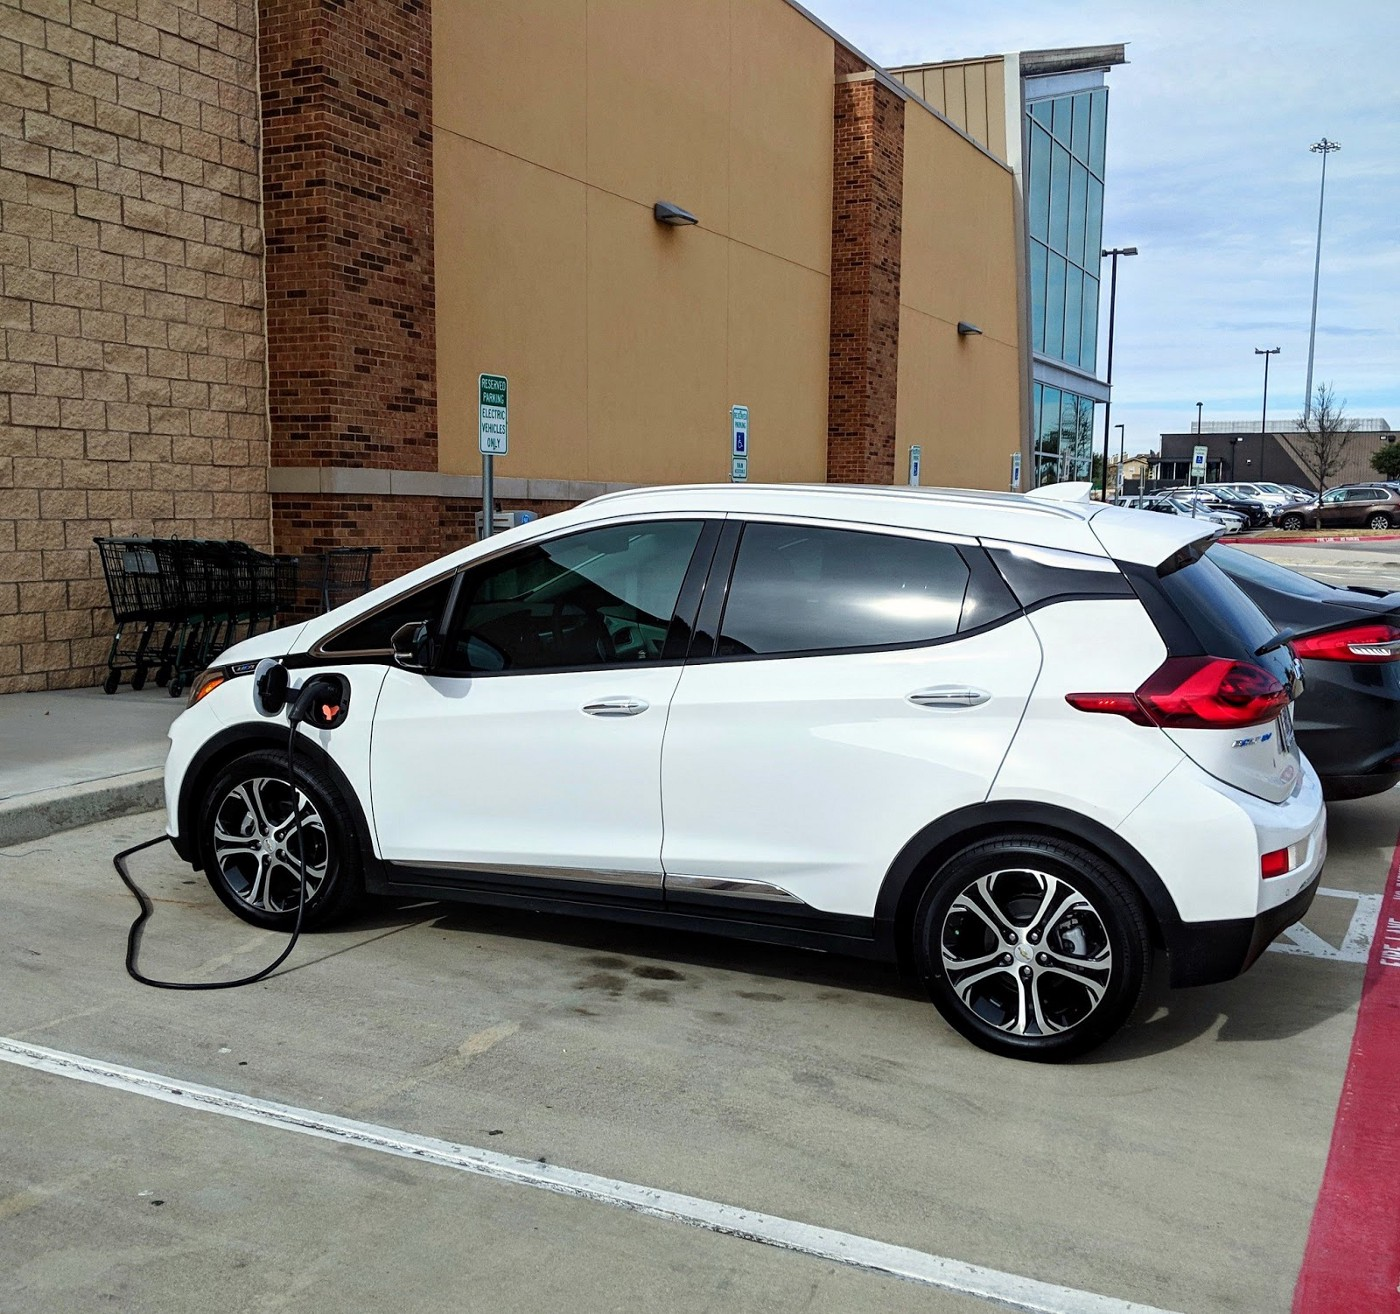 A white Chevy Bolt is being charged by an electric vehicle charger.